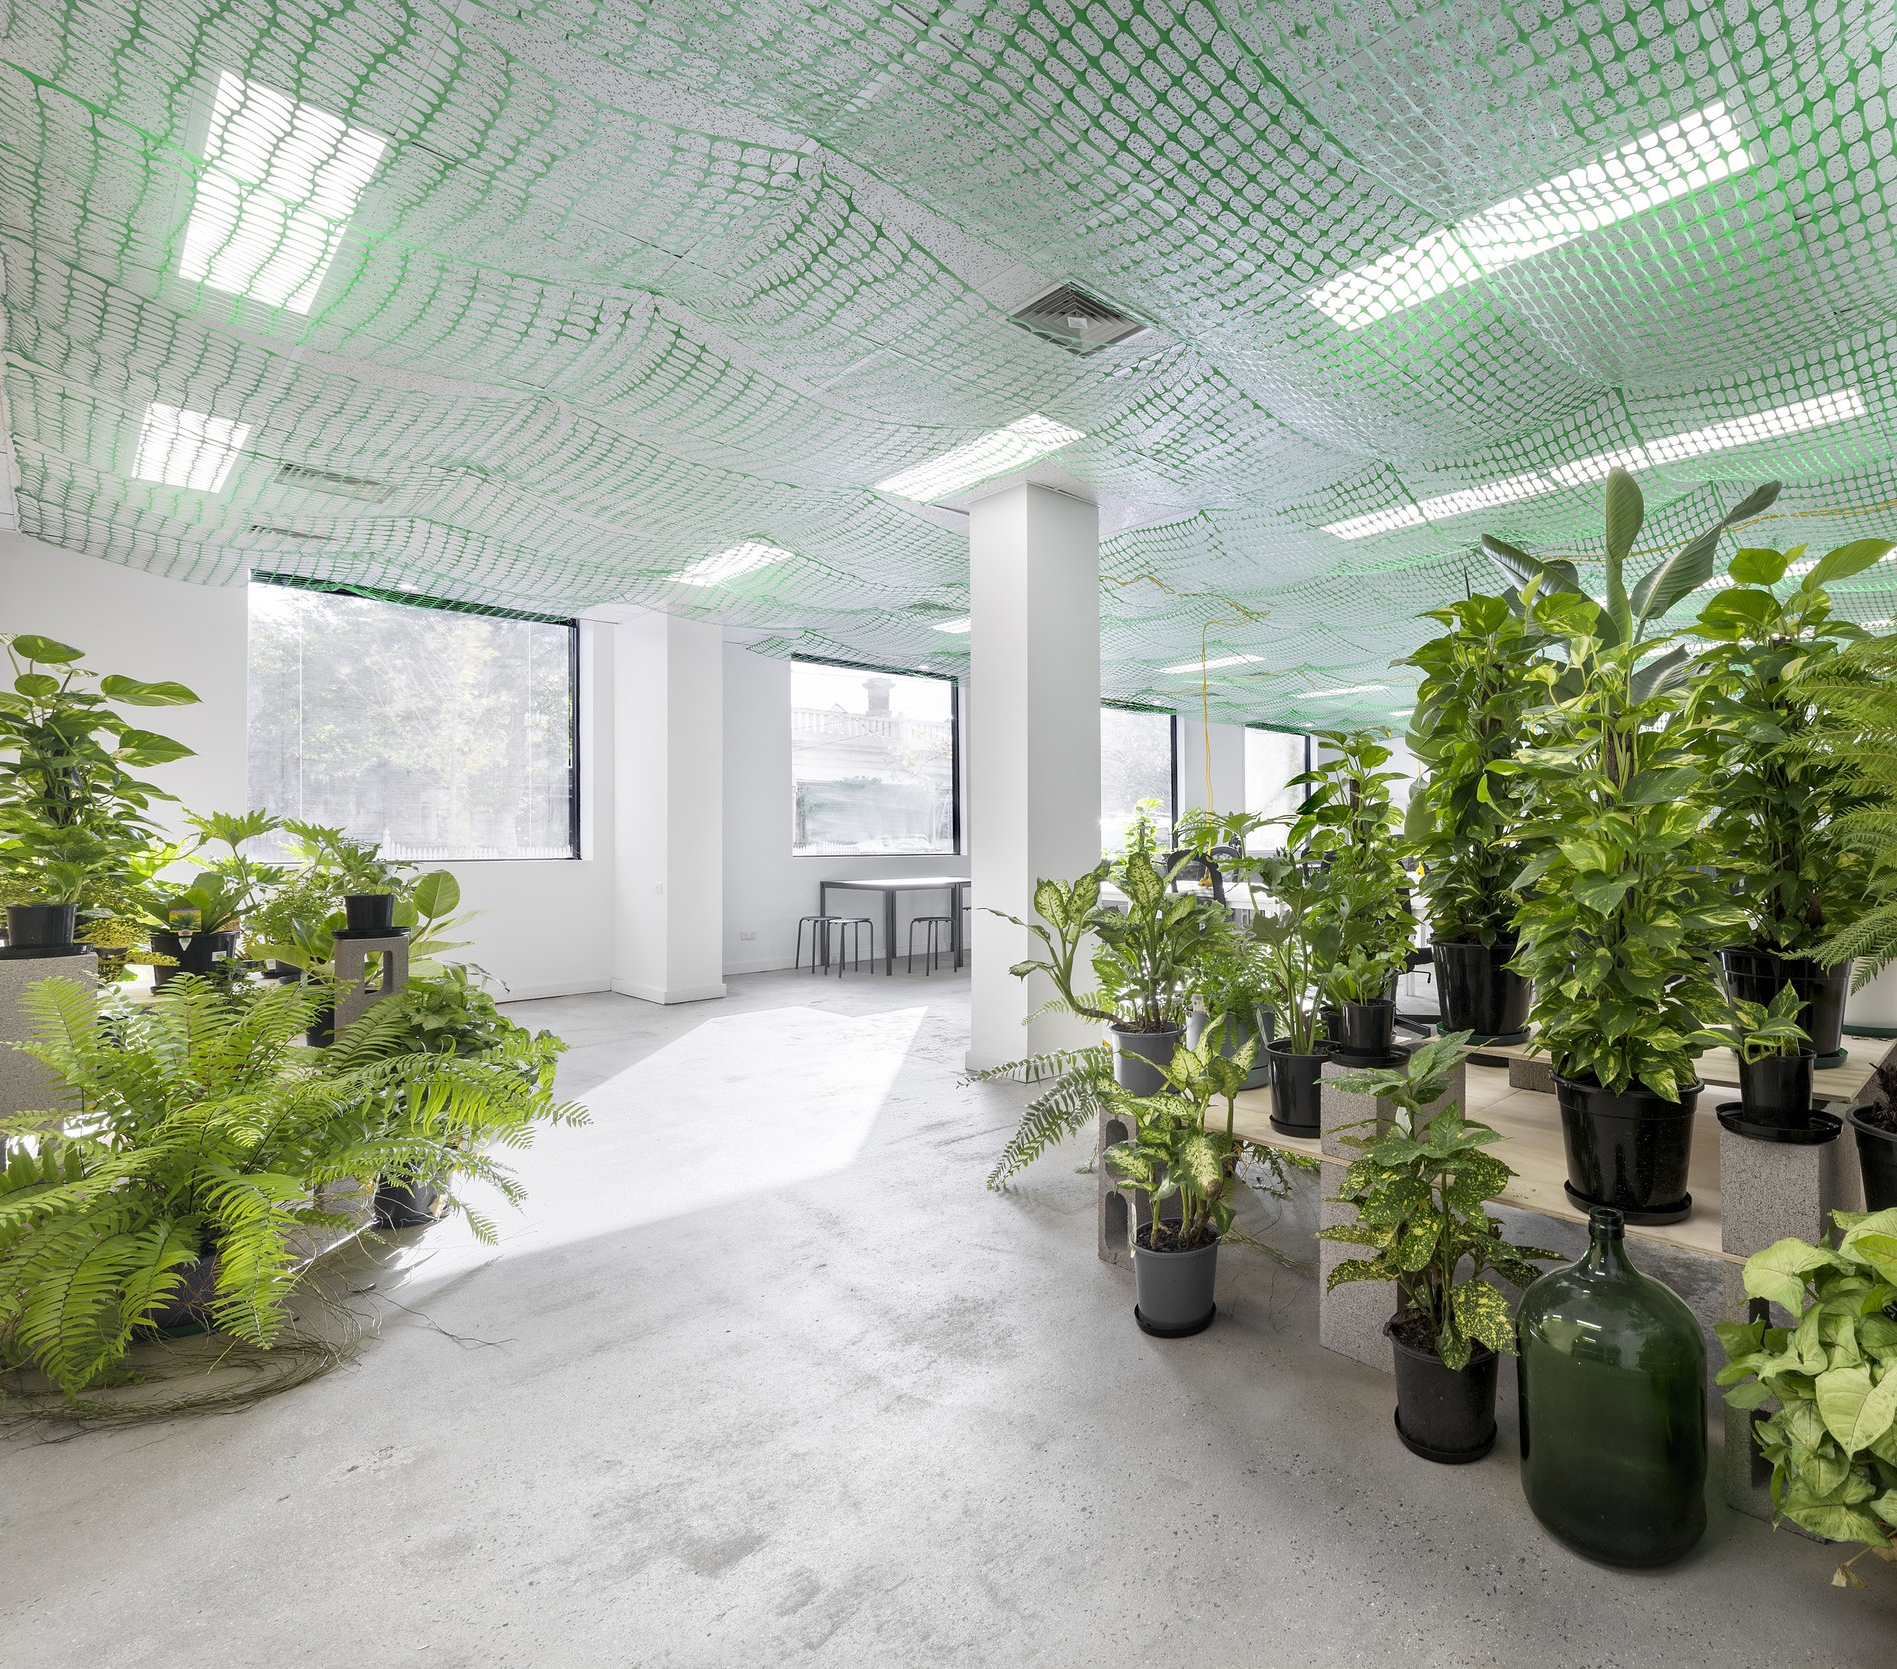 Co-working.Boardroom Hire.Business Mailing Address.1/430 Rae Street, Fitzroy North, VIC 3068, Australia - We're in business to help you connect community, business and environmental well-being.